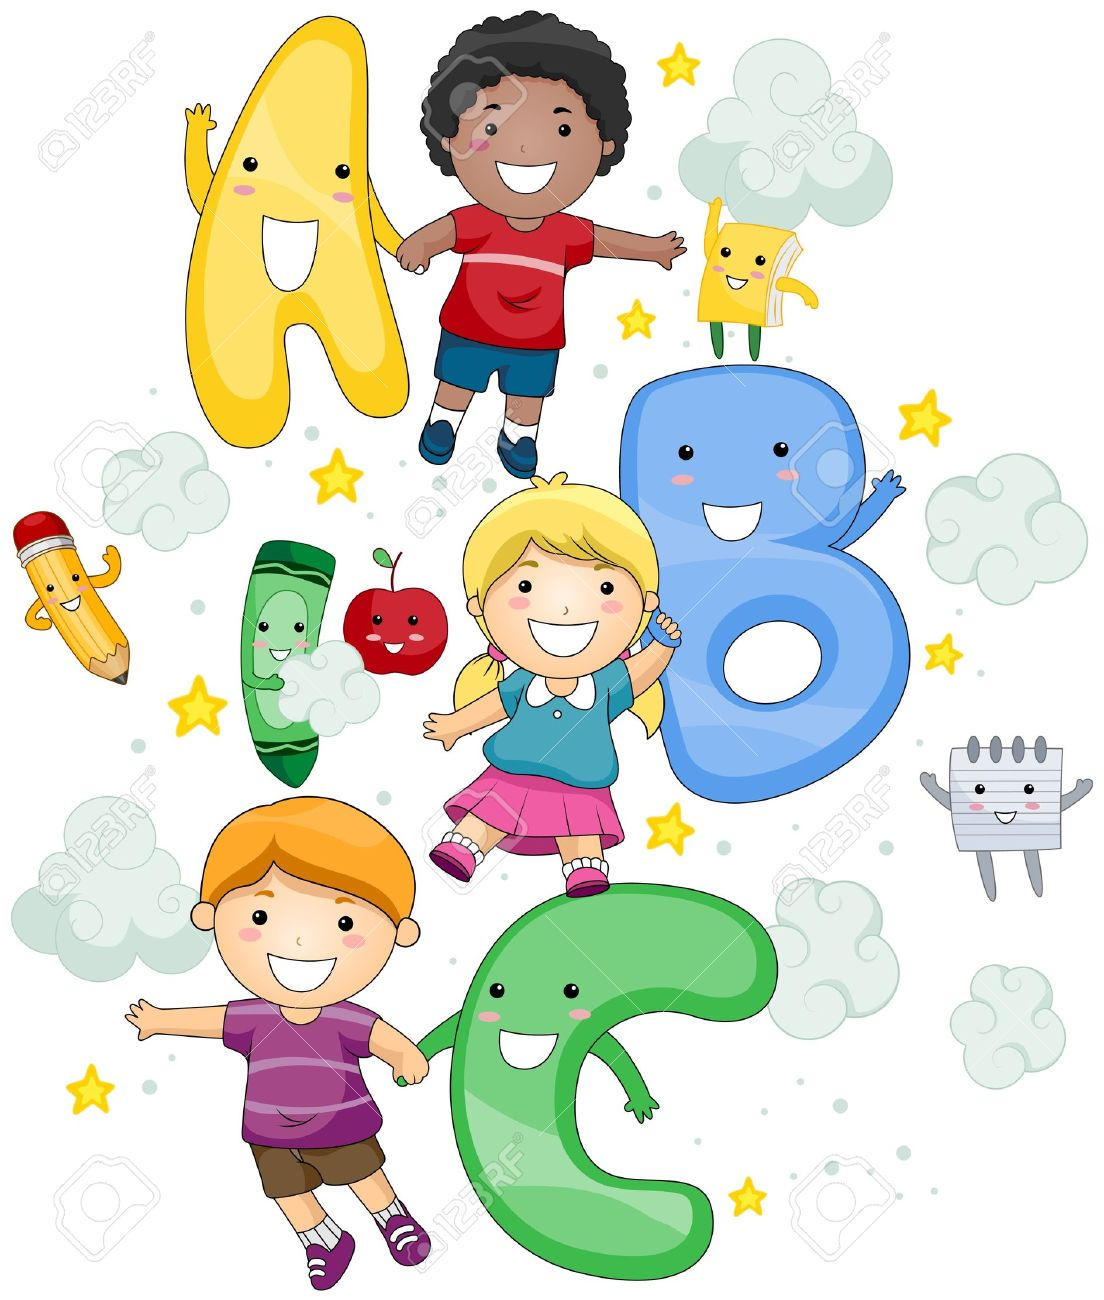 Abc clipart for kids png transparent library Abc clipart for kids - ClipartFest png transparent library